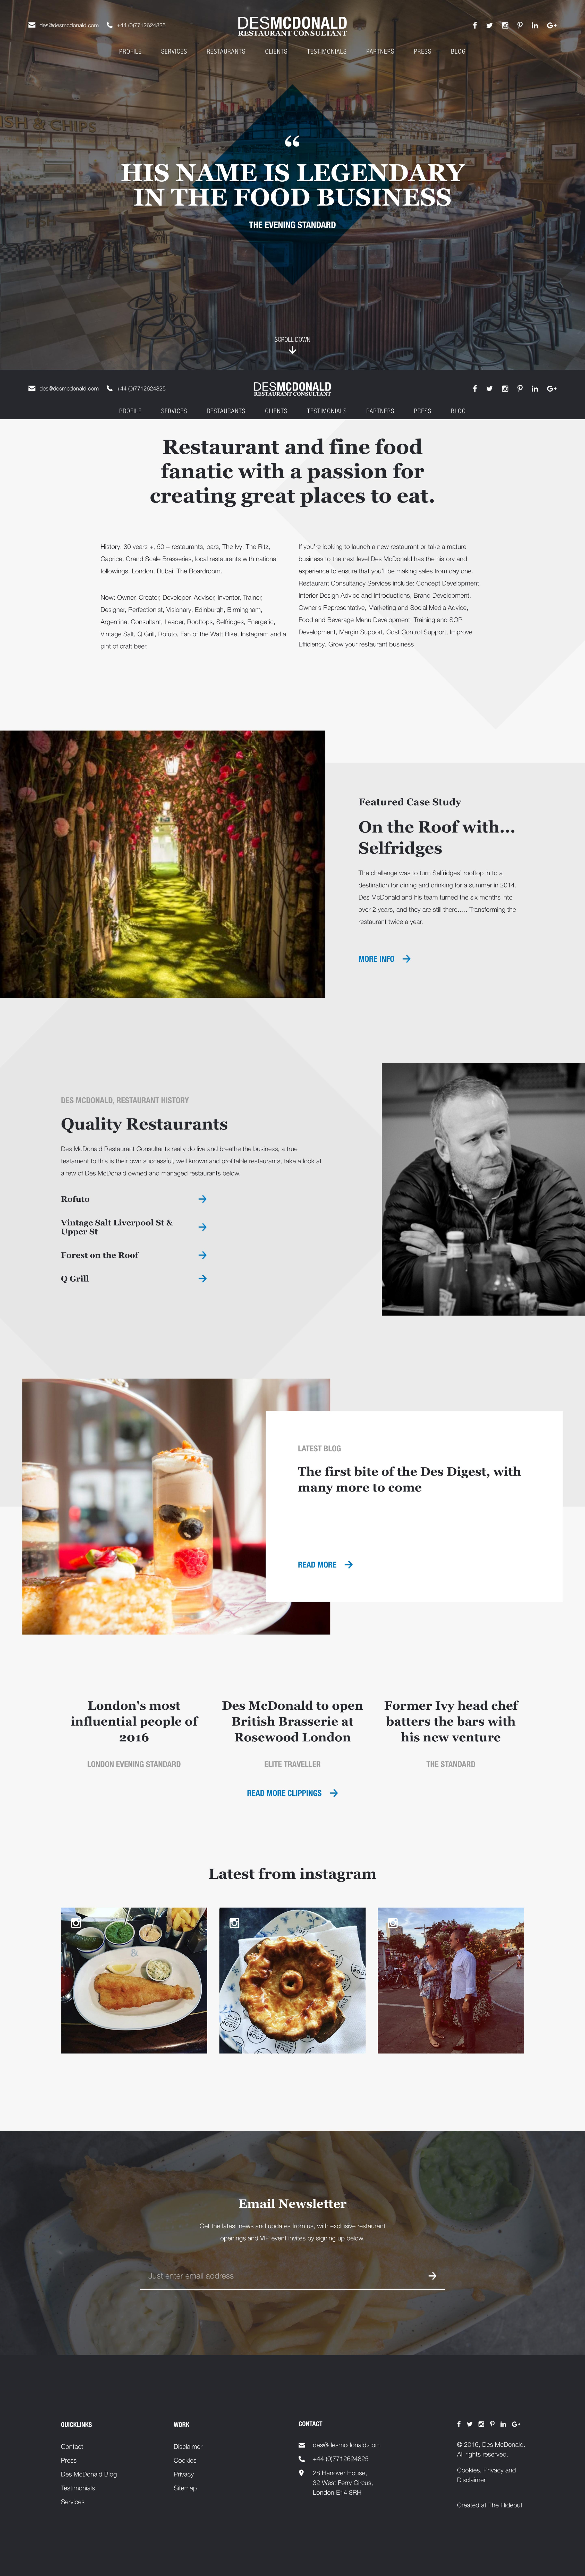 desktop-site-example-des-mcdonald